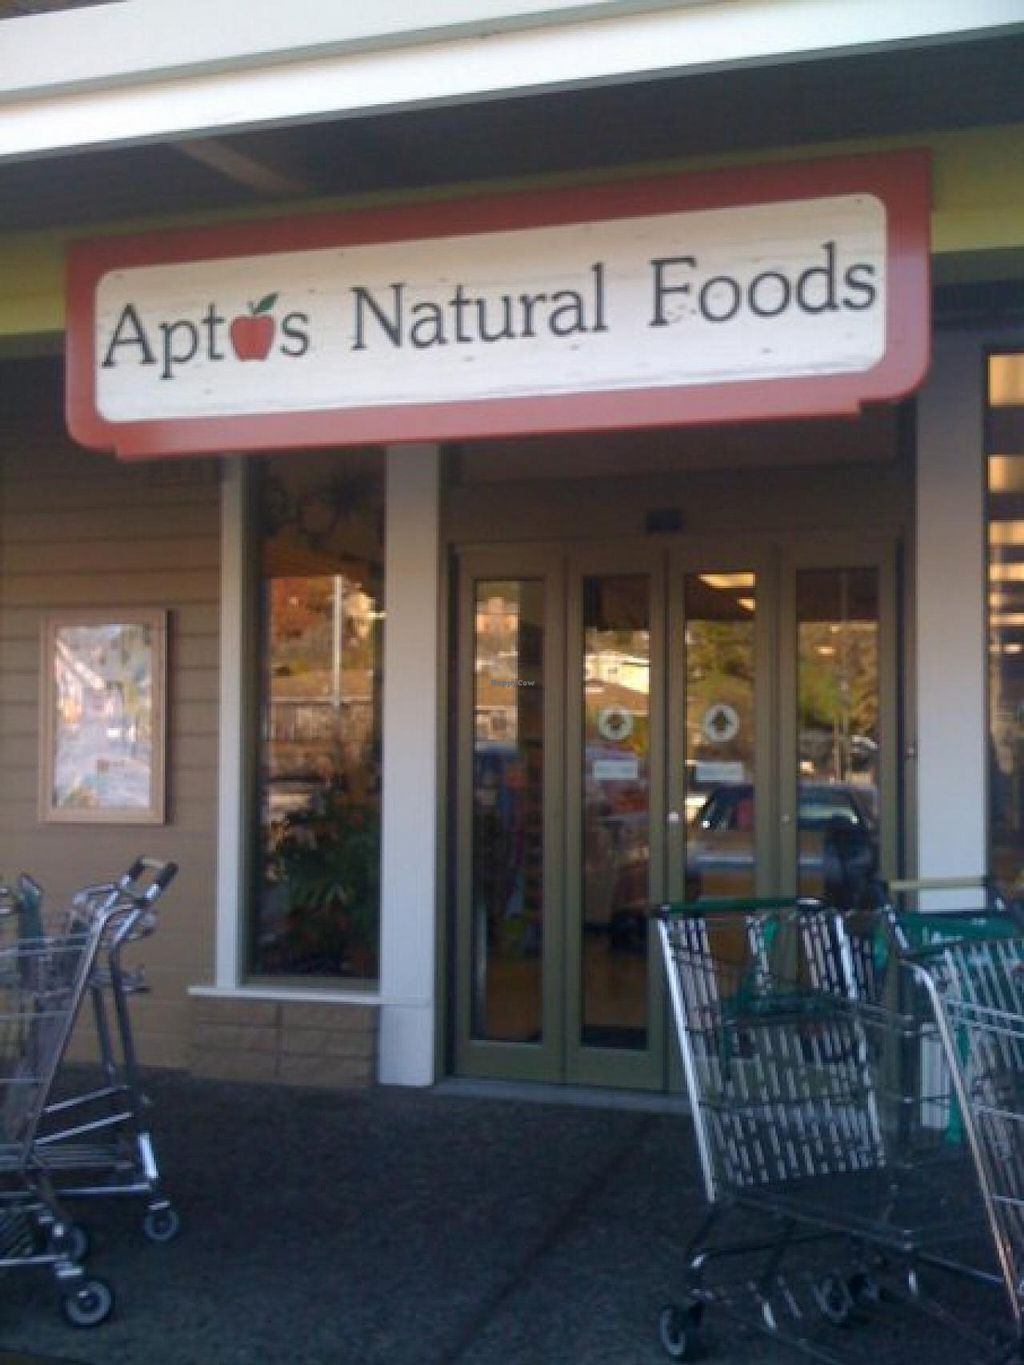 """Photo of Aptos Natural Foods  by <a href=""""/members/profile/H"""">H</a> <br/>outside  <br/> January 23, 2014  - <a href='/contact/abuse/image/1477/62991'>Report</a>"""